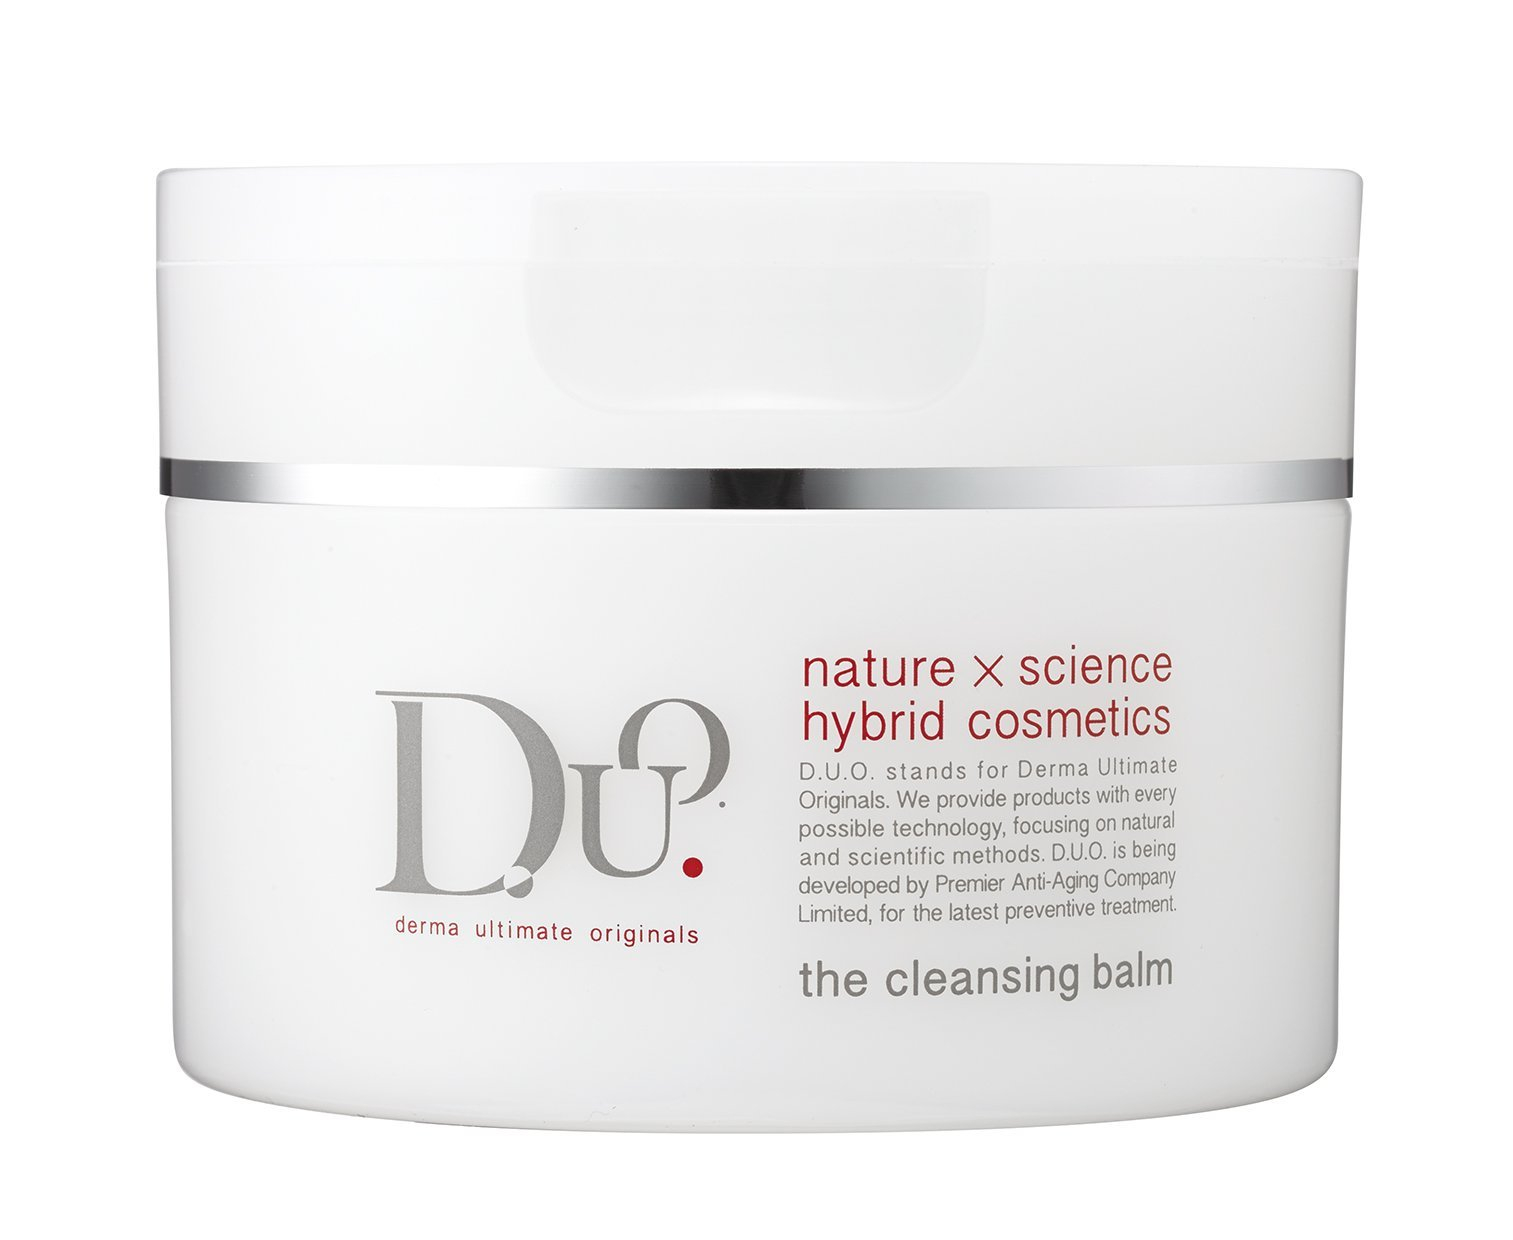 DUO The Cleansing Balm 90g, 3.2oz